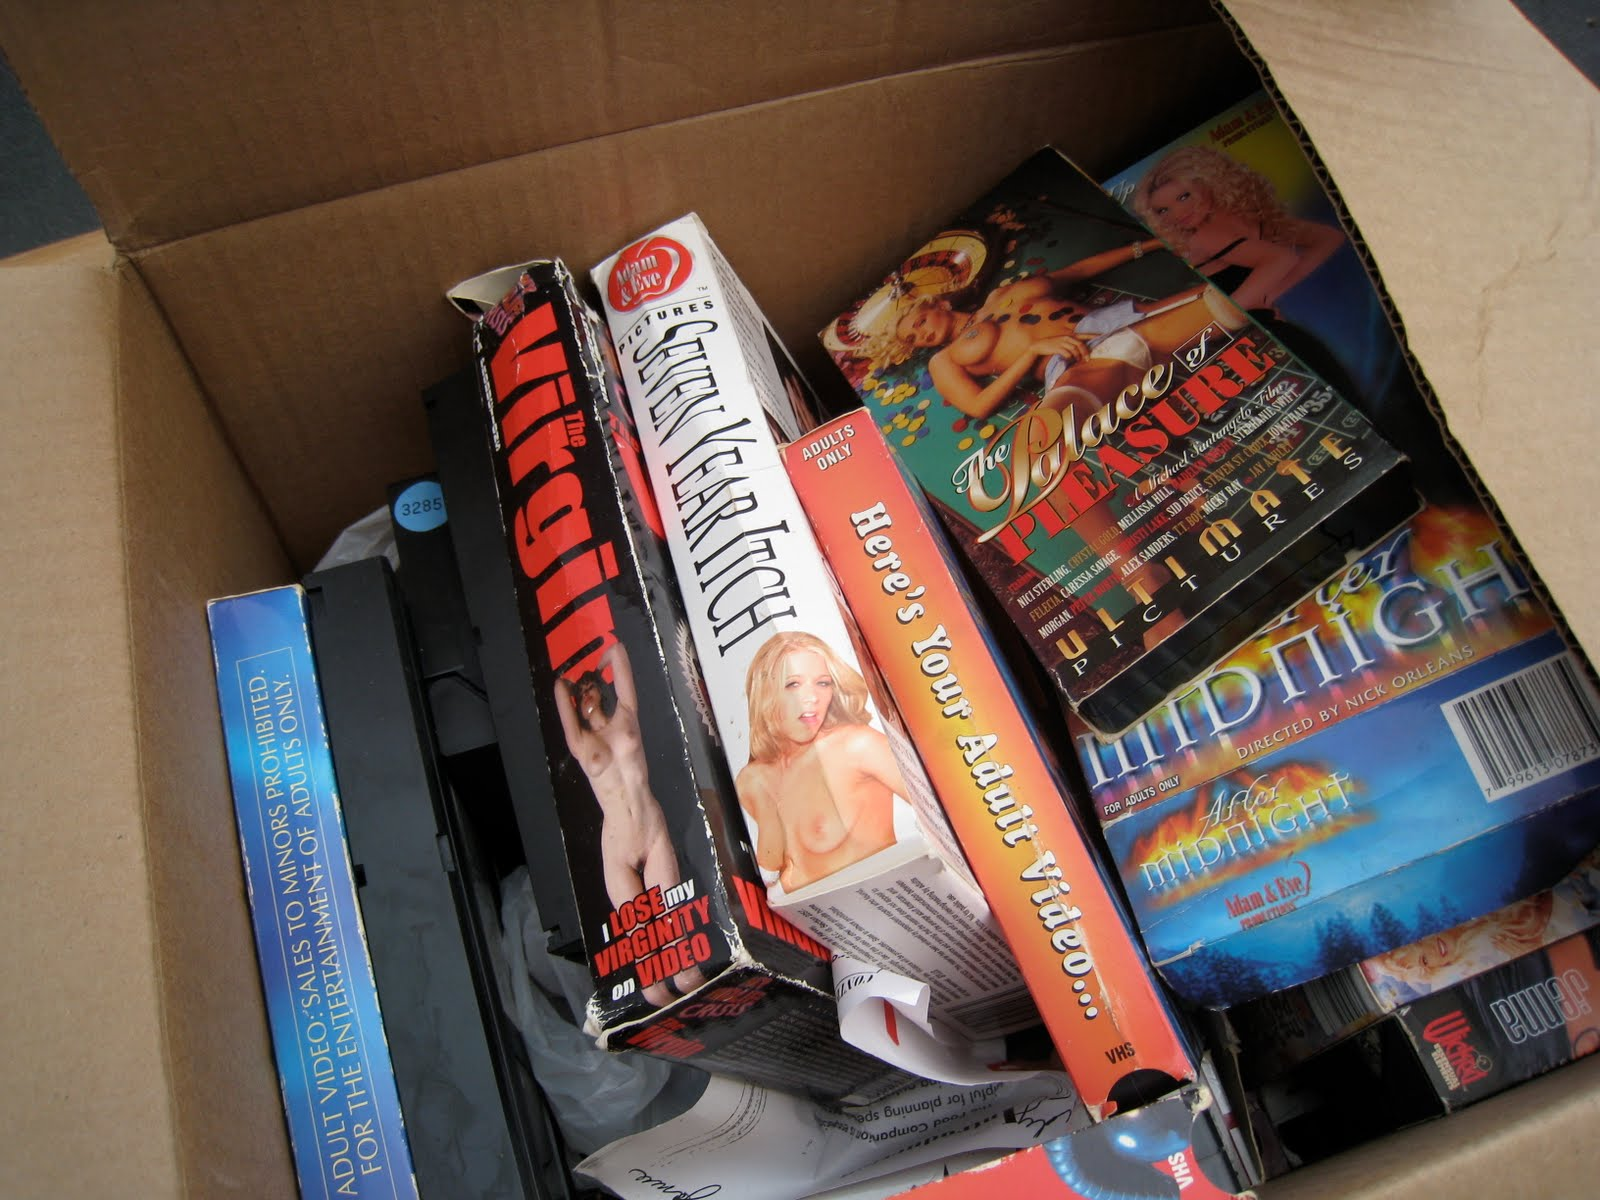 ... have been there to see the person who bought this GIANT box of VHS porn.